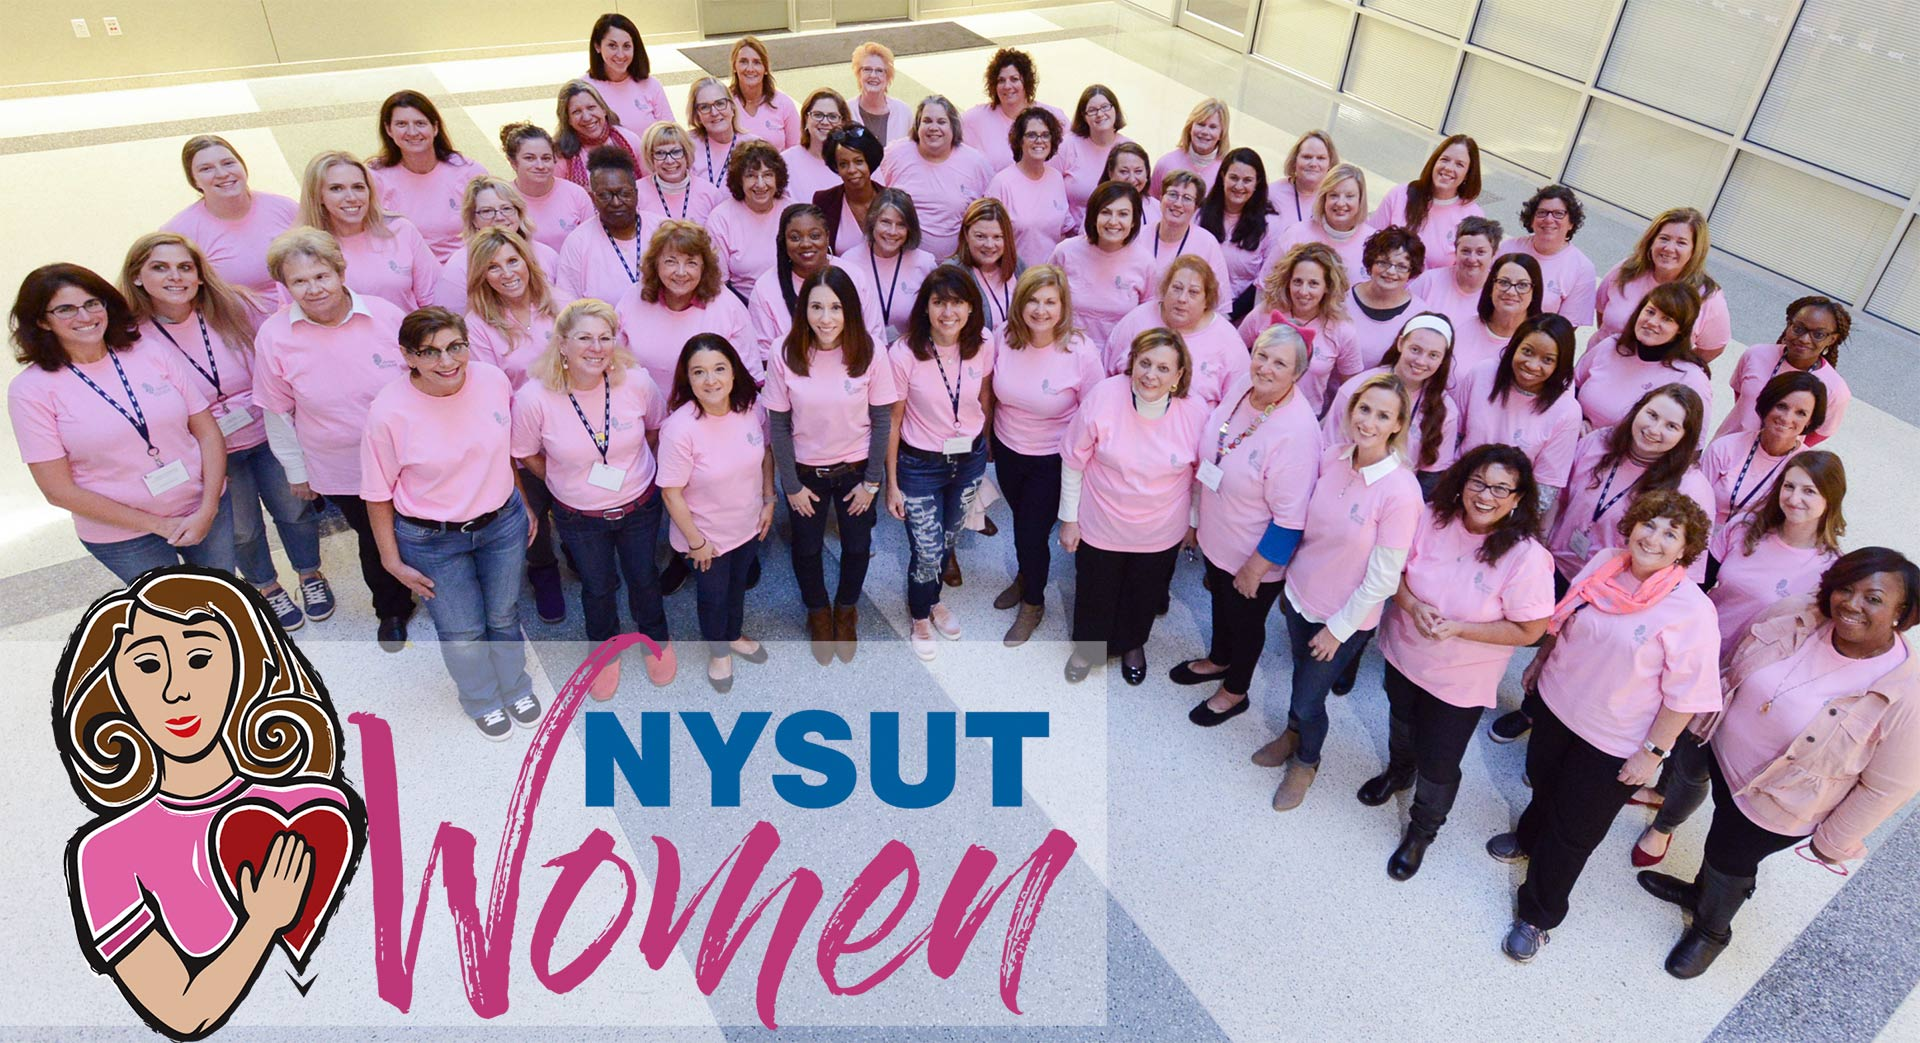 nysut women's committee